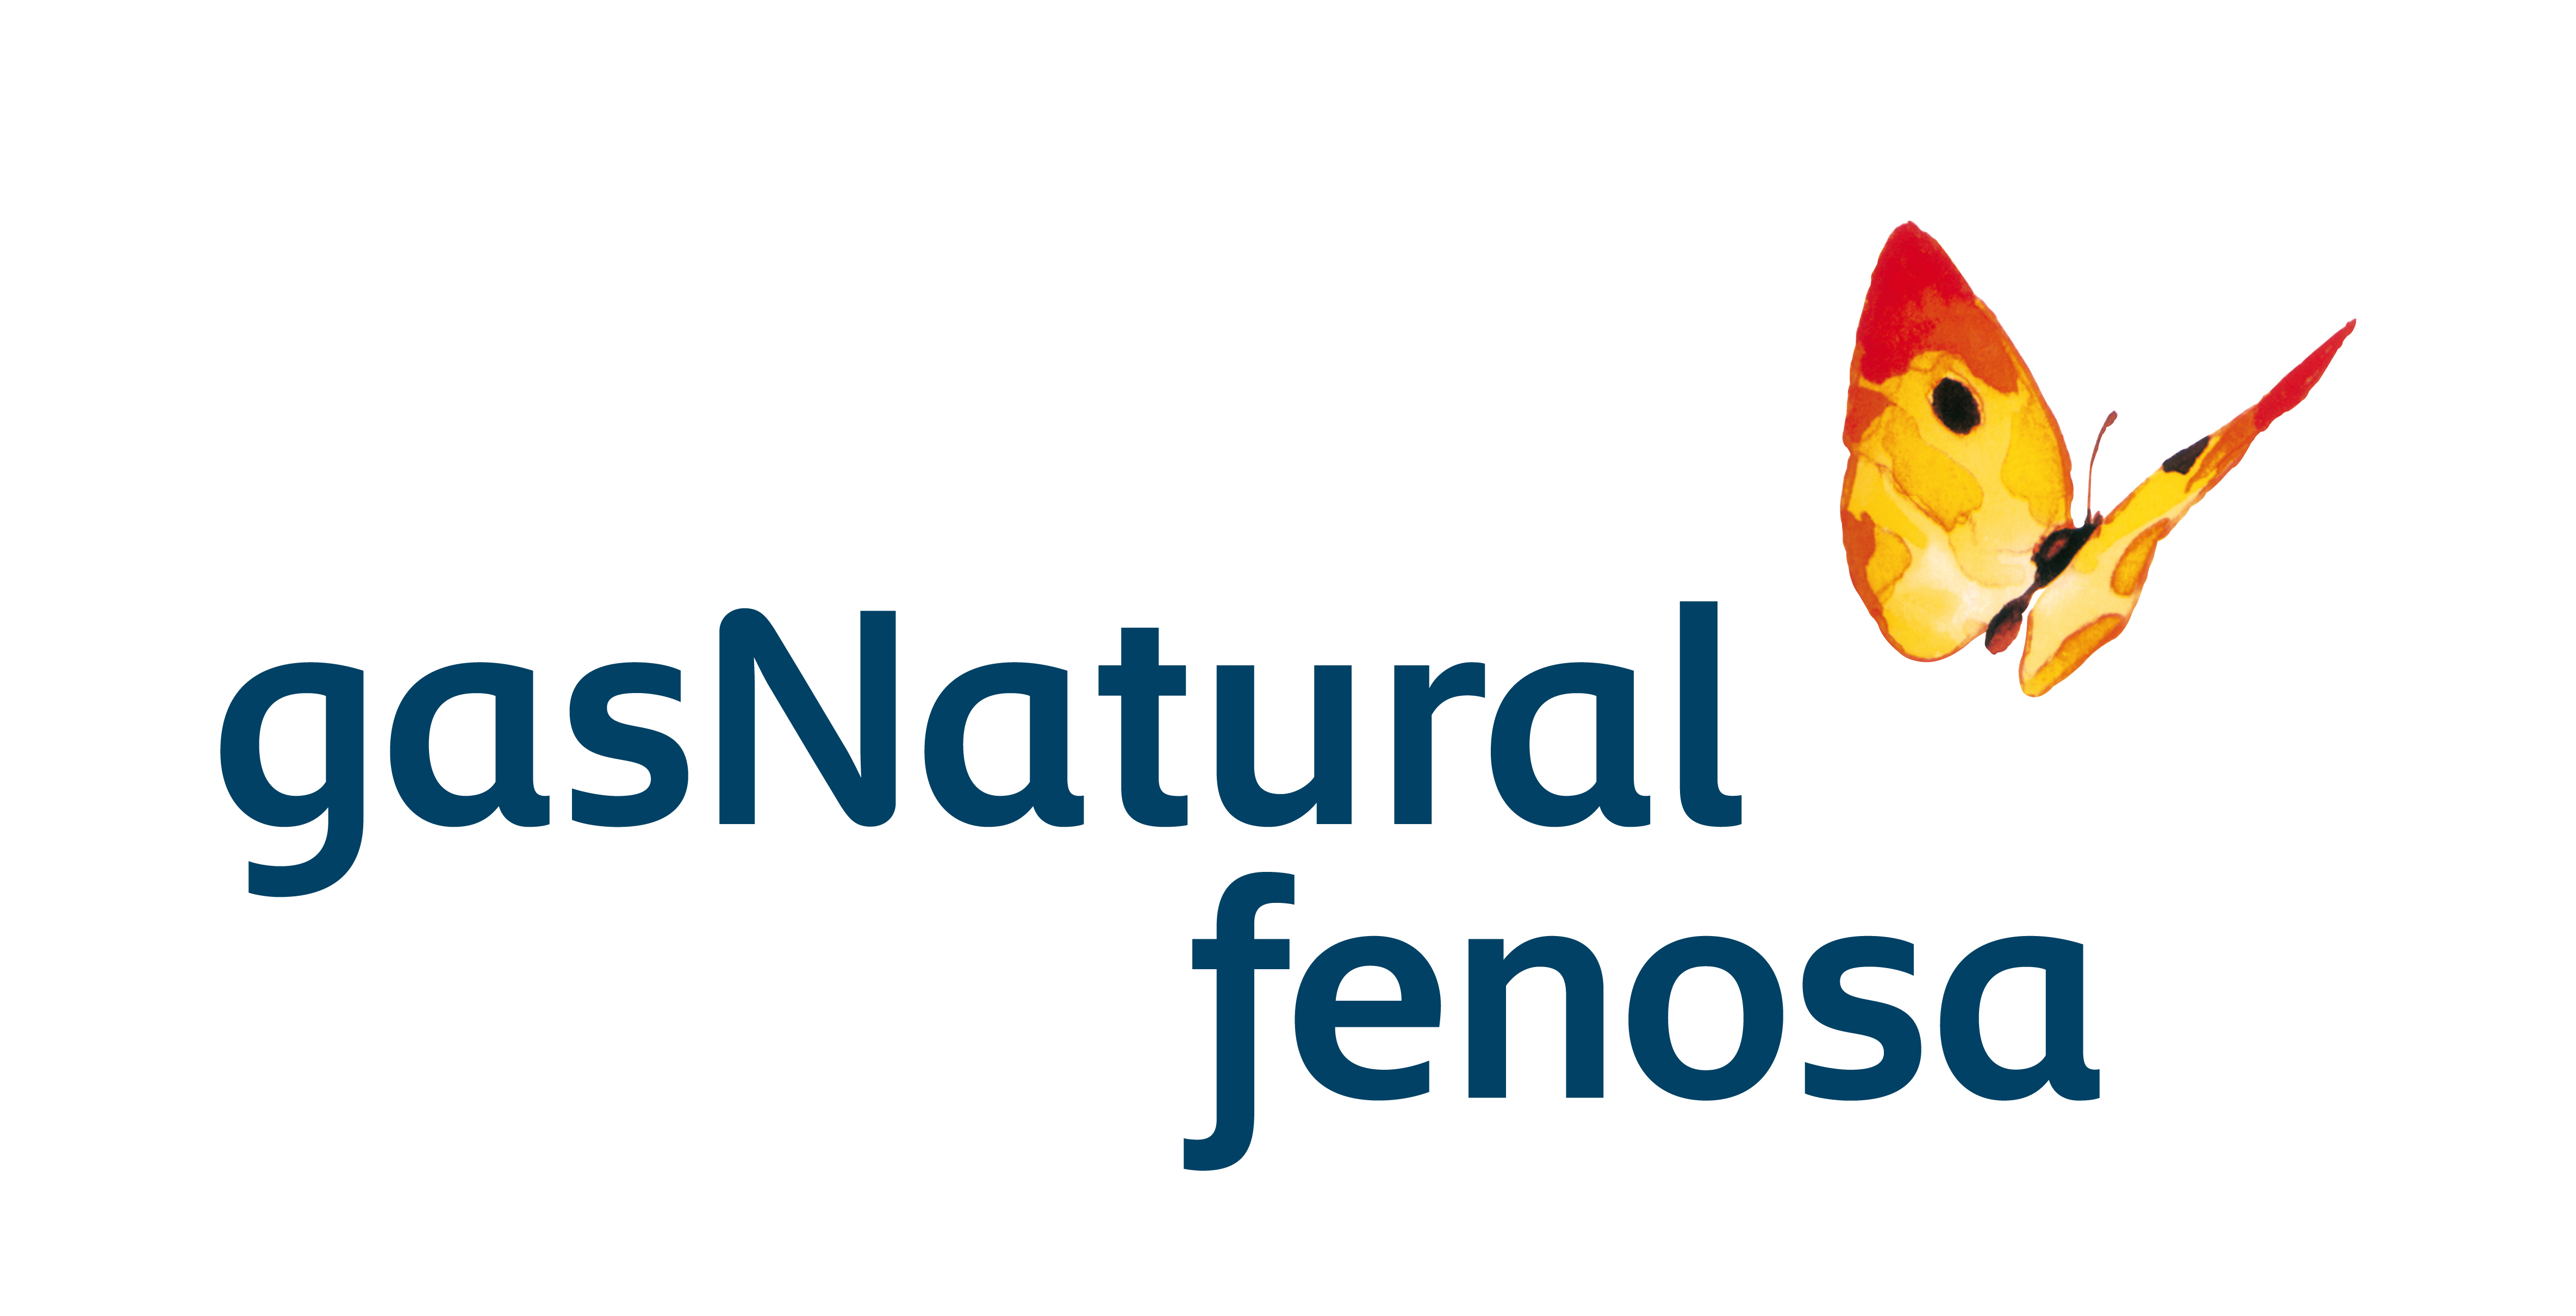 Gas Natural Fenosa Capitalises On Its 'Ideal' Position To Deliver On Its Sustainability Agenda